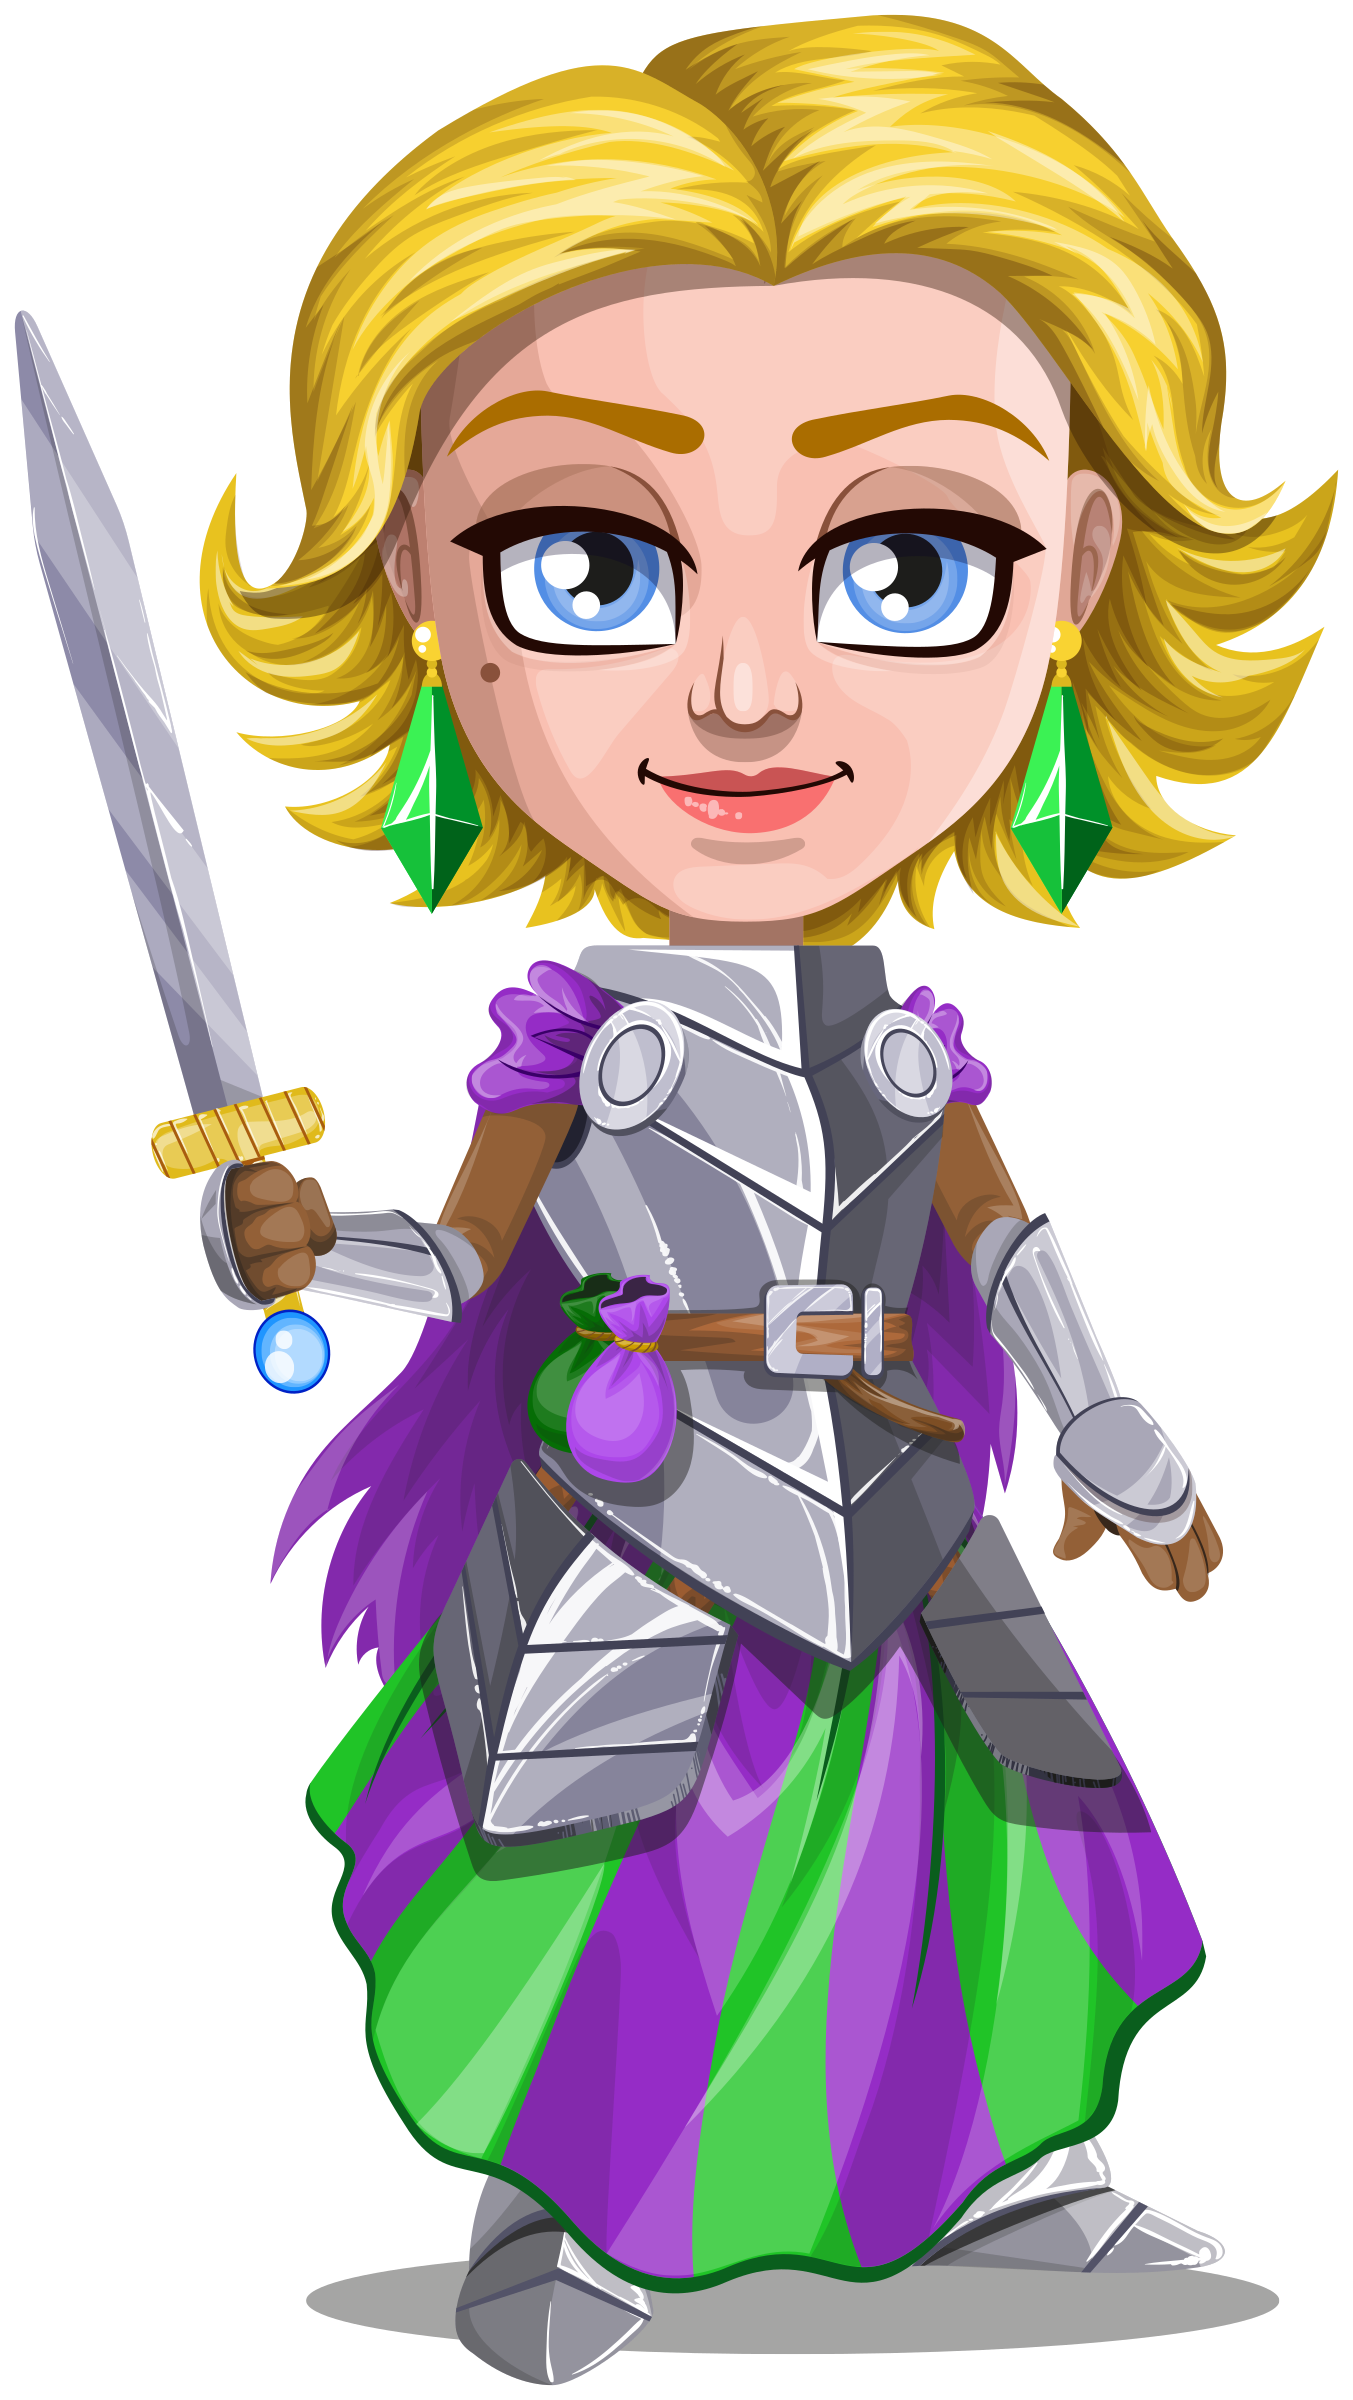 Woman knight in armor. Warrior clipart medieval warrior